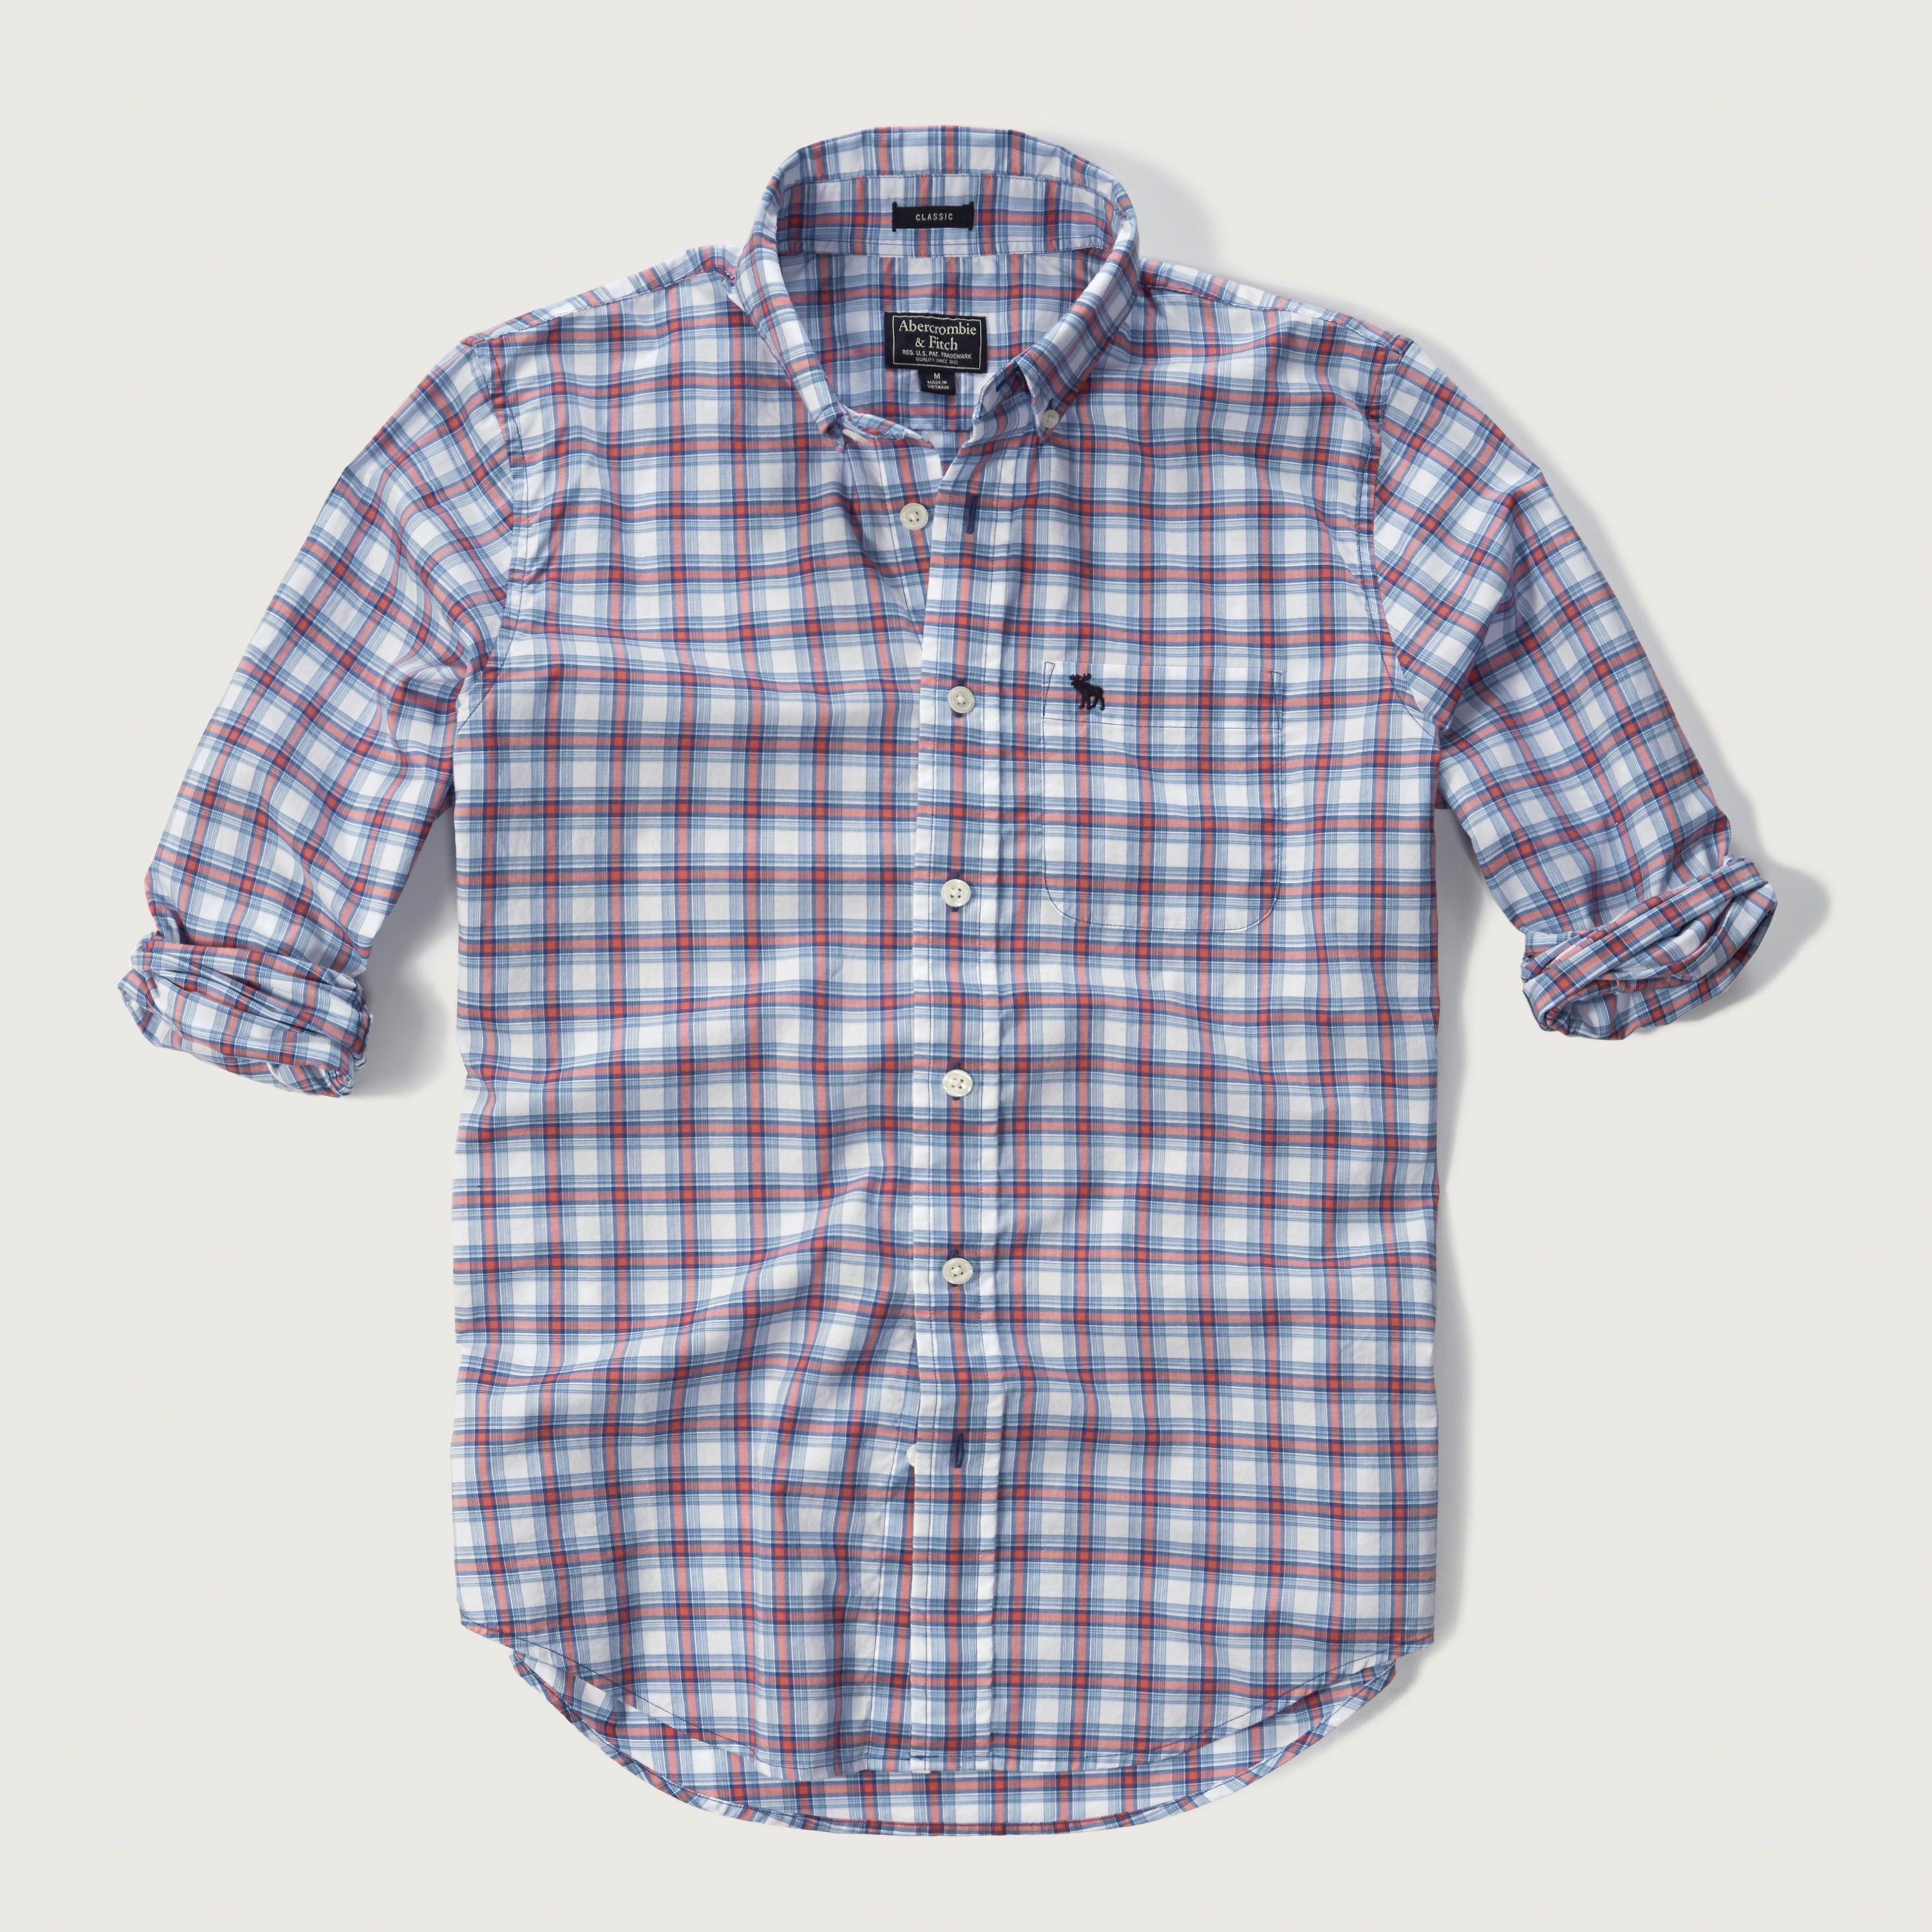 abercrombie amp fitch iconic plaid shirt in blue for men